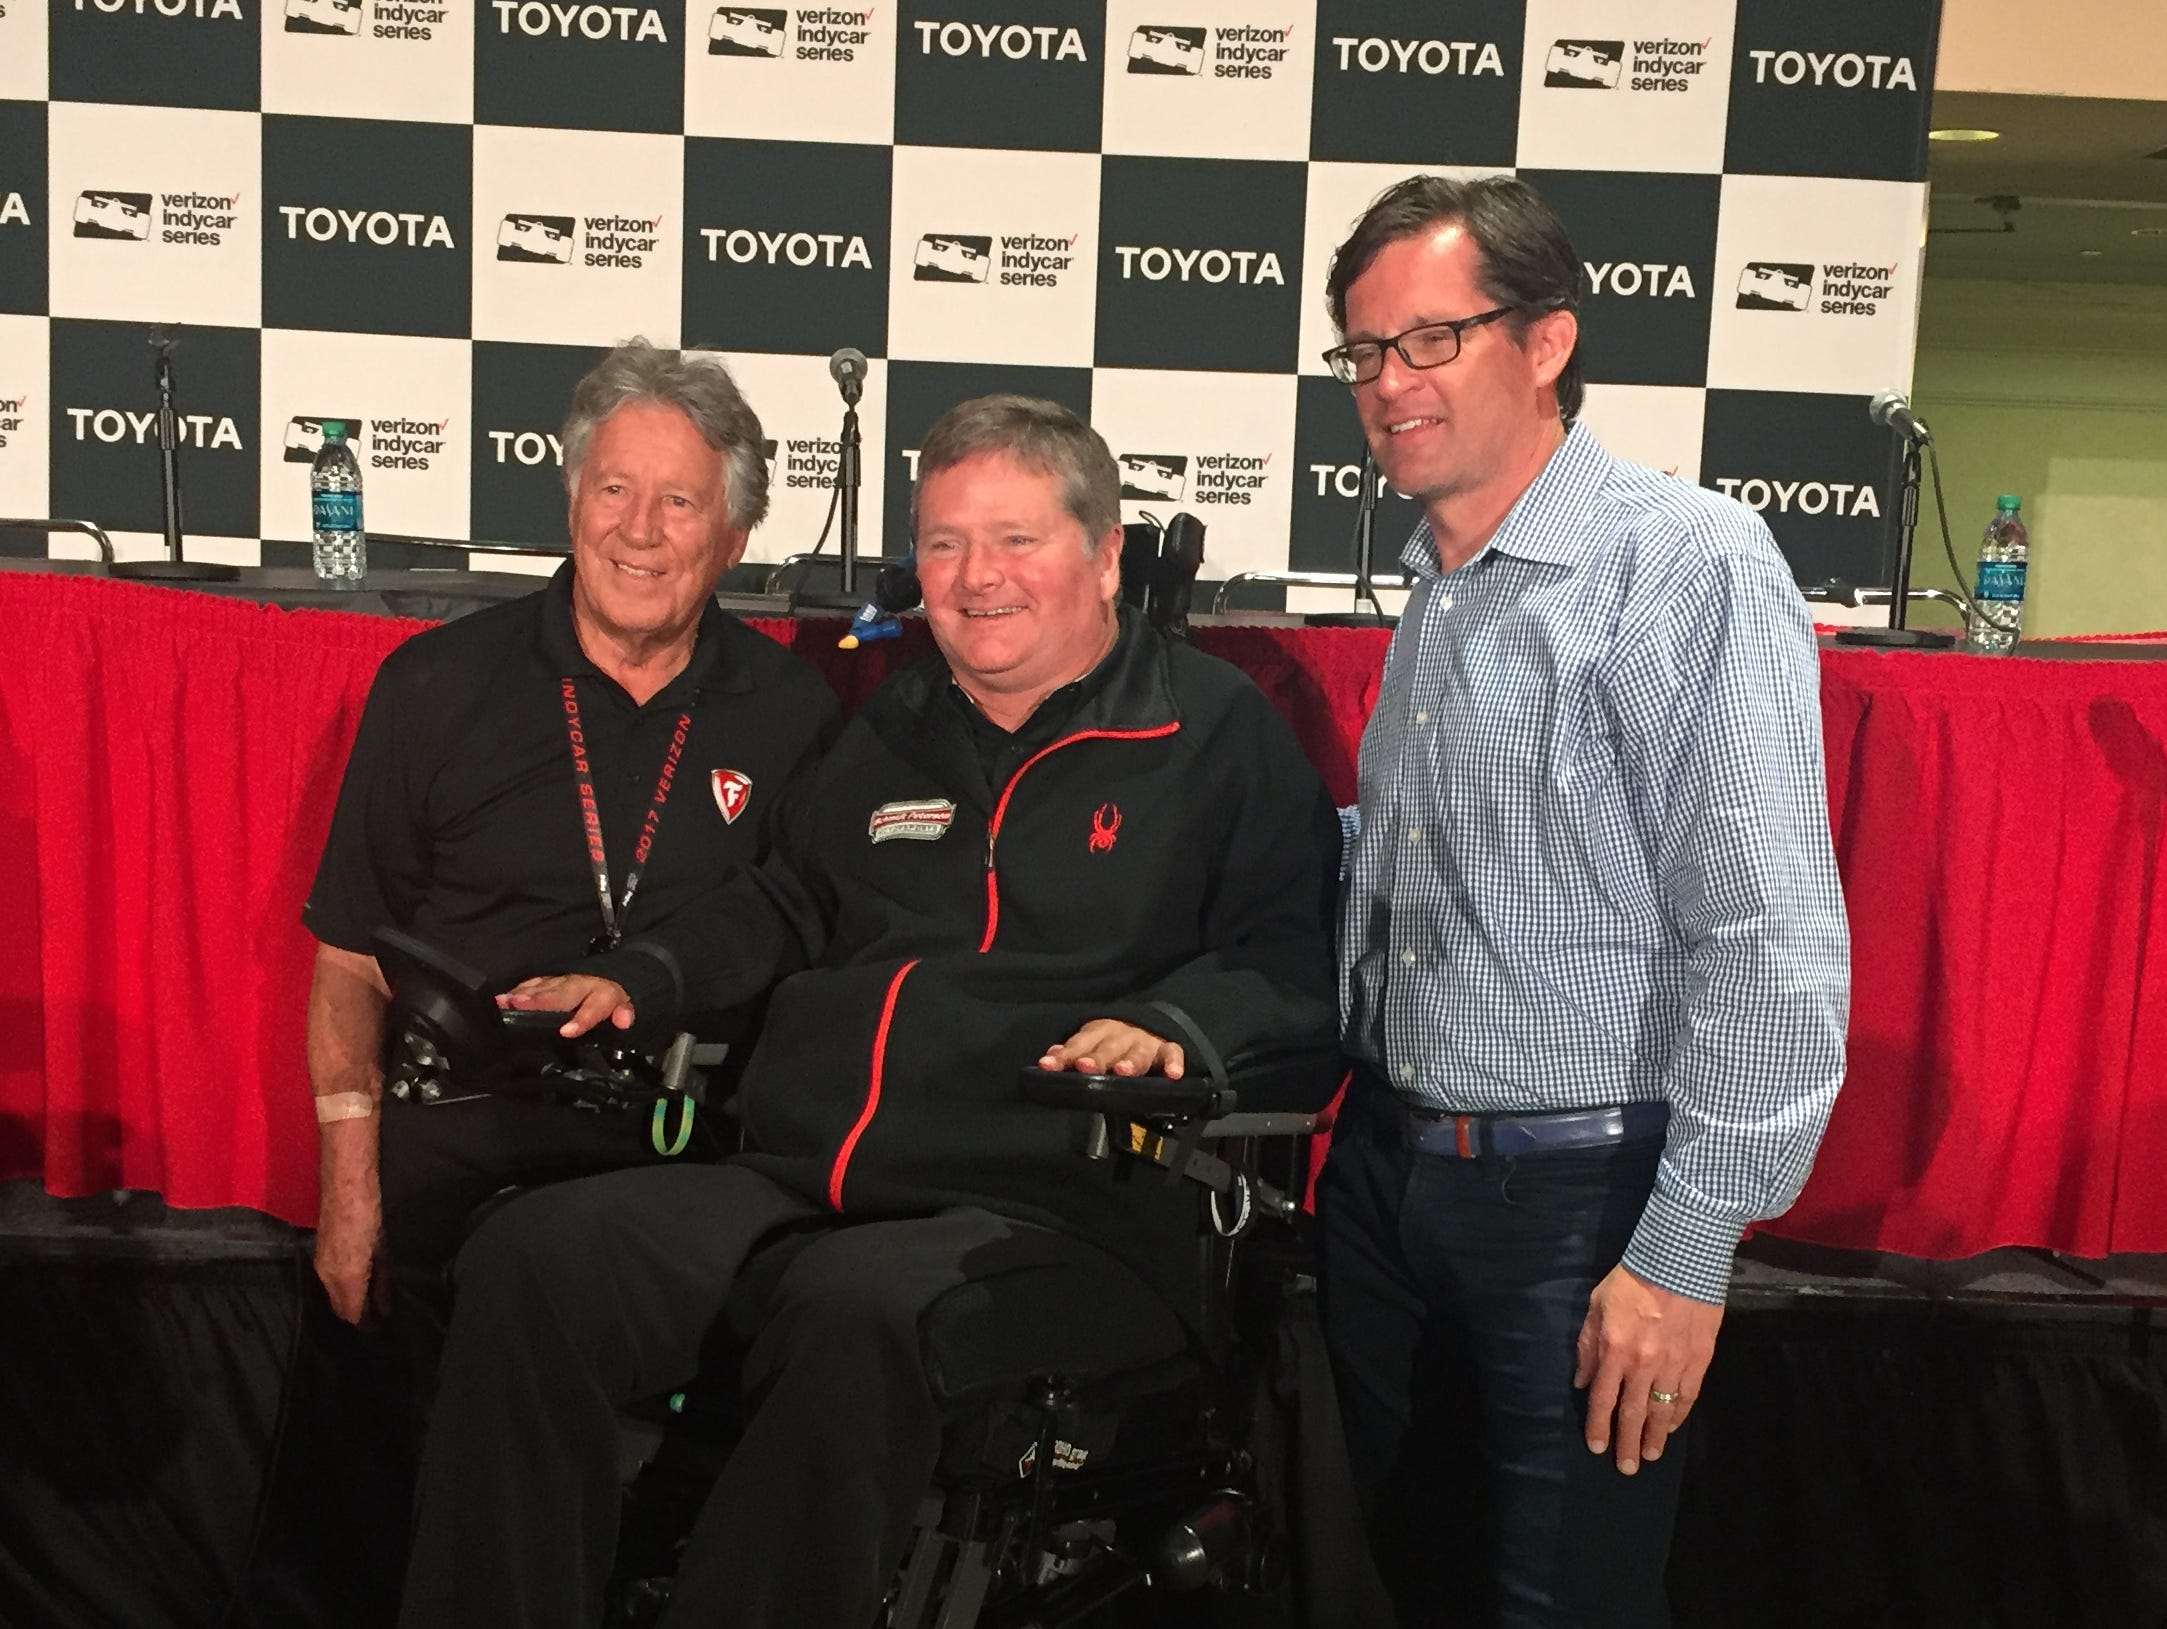 Racing legend Mario Andretti, team owner Sam Schmidt and Indianapolis Motor Speedway president Doug Boles pose for a photo after their news conference announcing a race between Andretti and Schmidt in semi-autonomous cars at IMS.